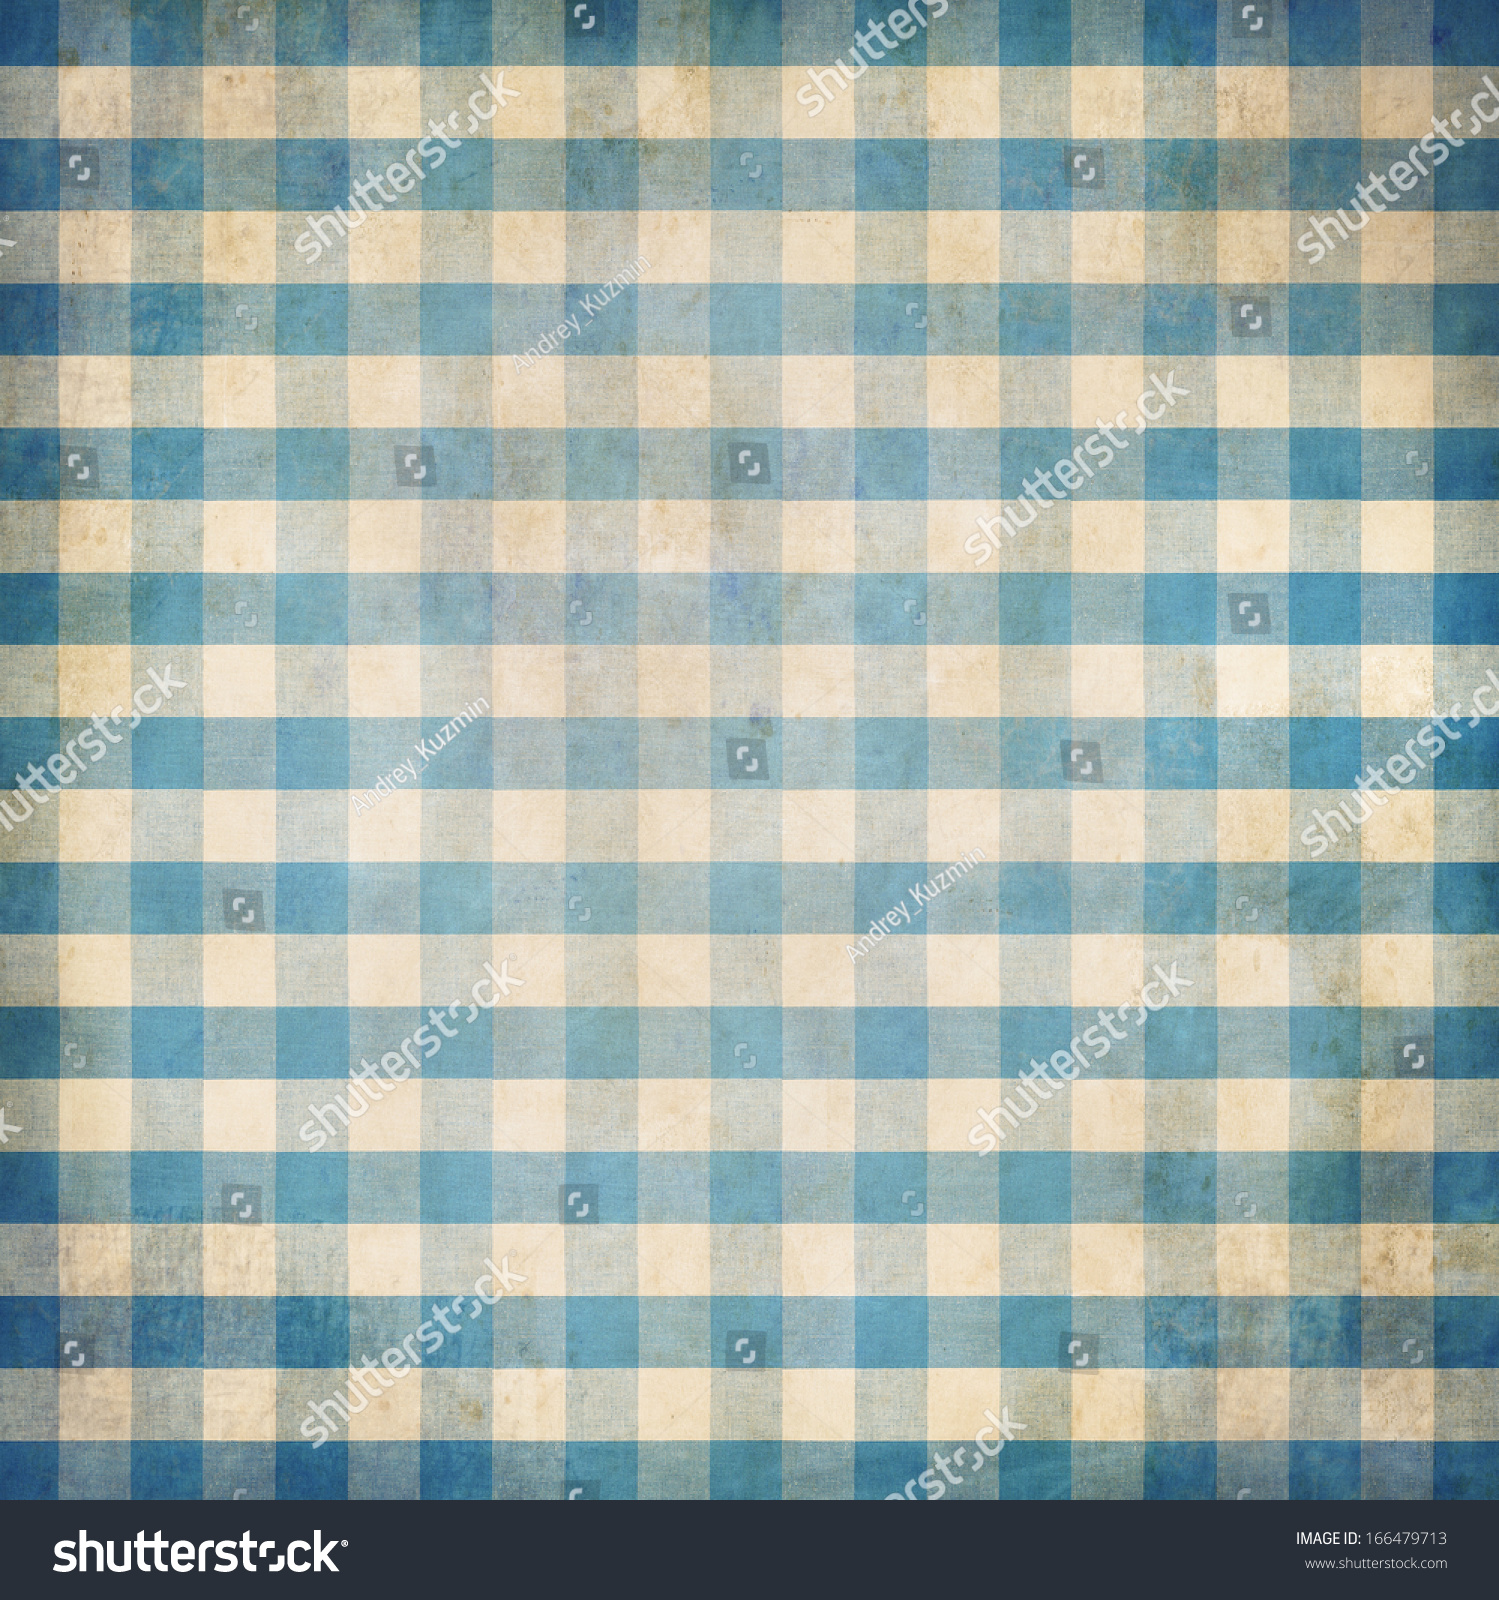 Blue tablecloth background - Blue Grunge Checked Gingham Picnic Tablecloth Background